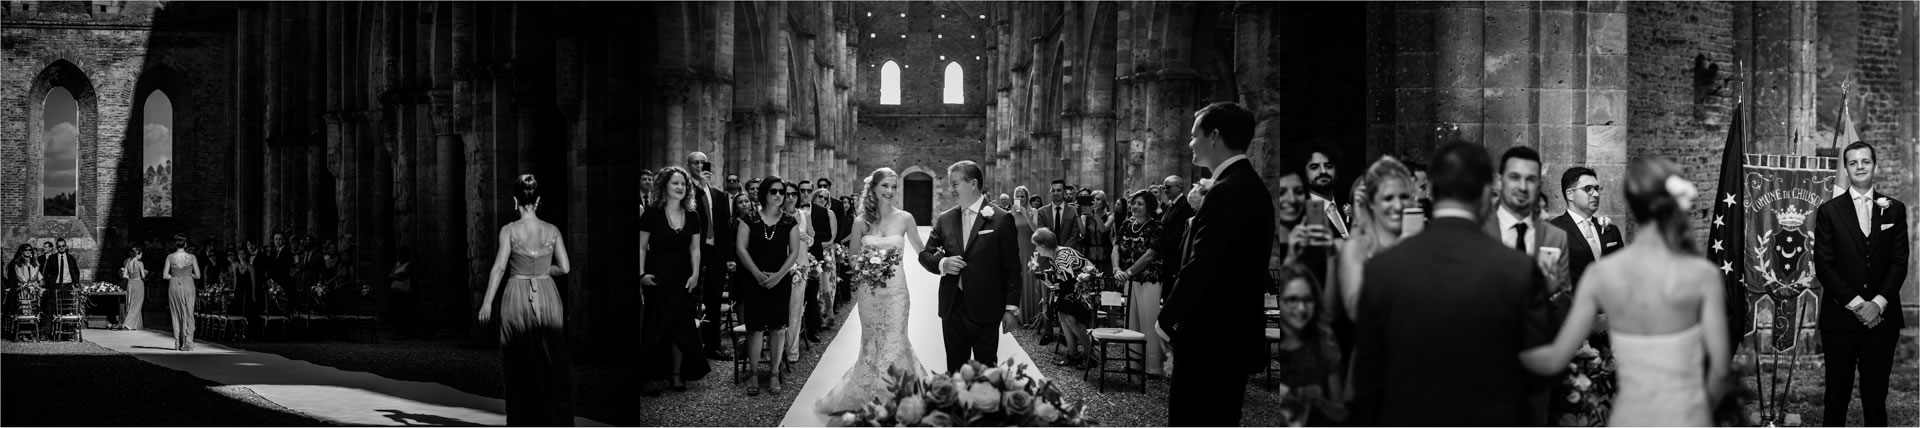 - 19 :: Wedding at Borgo Santo Pietro // San Galgano // WPPI 2018 // You look like a movie :: Luxury wedding photography - 18 ::  - 19